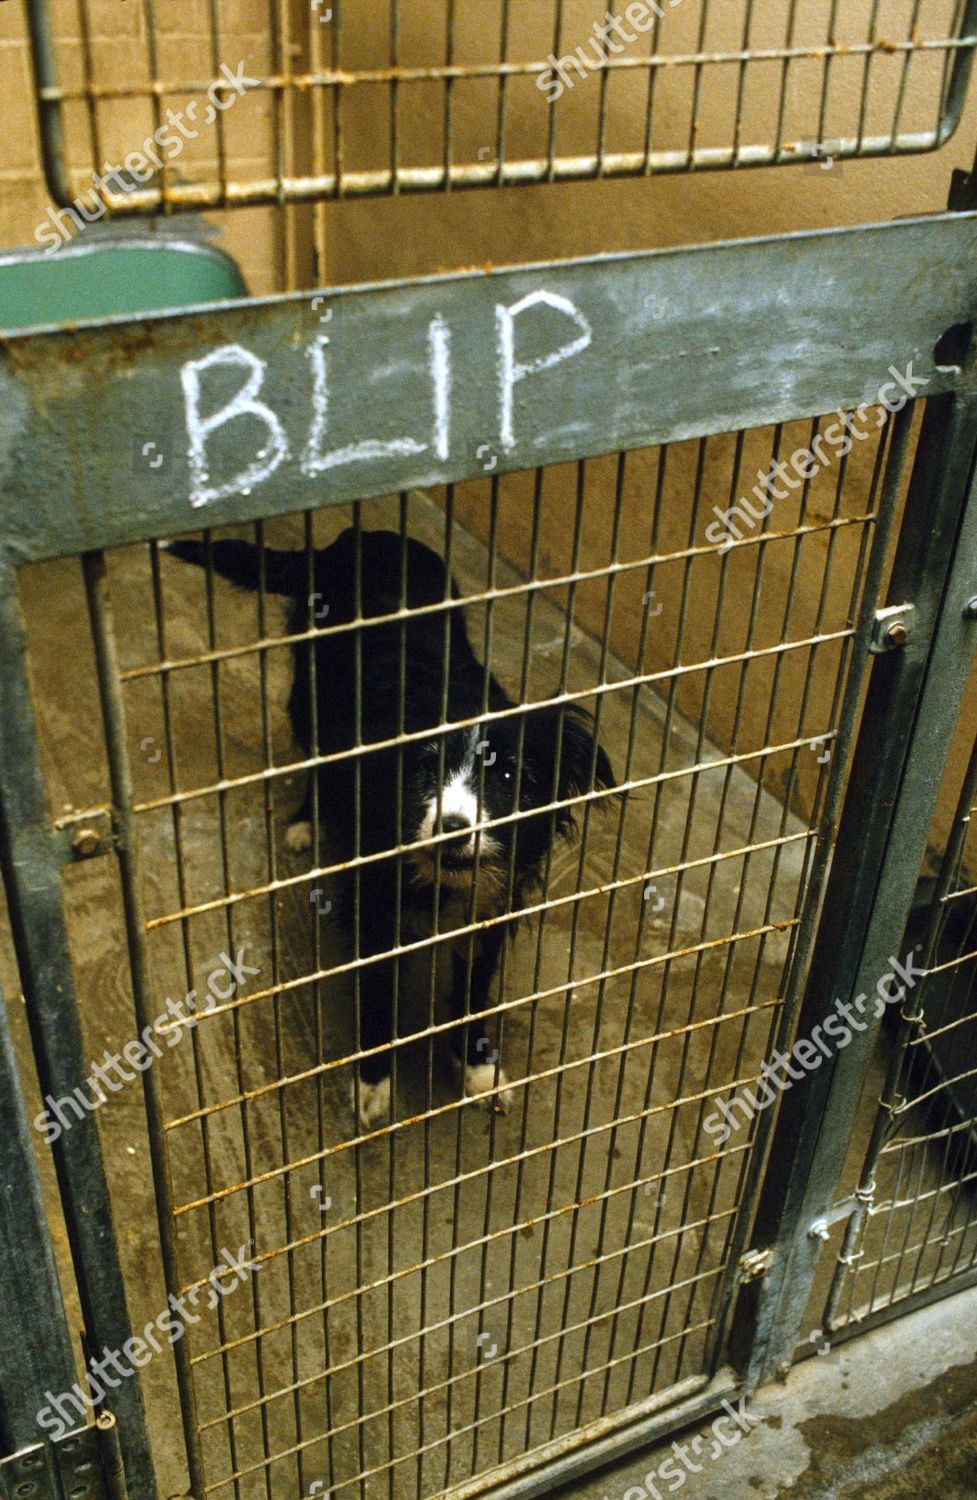 Bleep looks pitiful and sad in this rare photo of her from Battersea Dog's Home